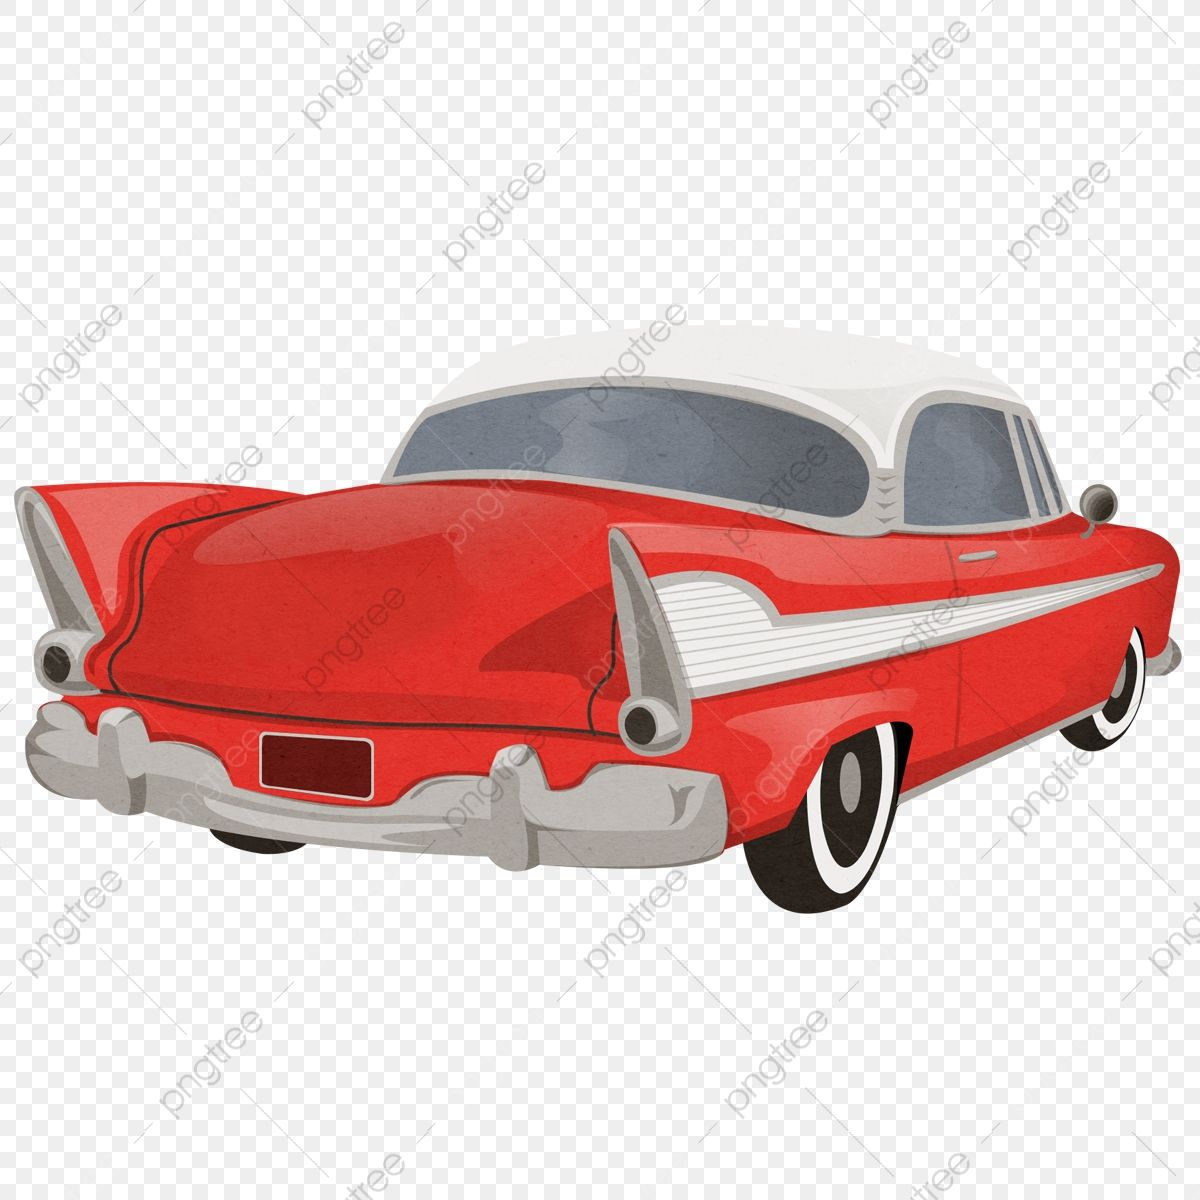 Classic Vintage Car Car Clipart Oldie Fifties Png Transparent Clipart Image And Psd File For Free Download Vintage Cars Car Logo Design Background Vintage